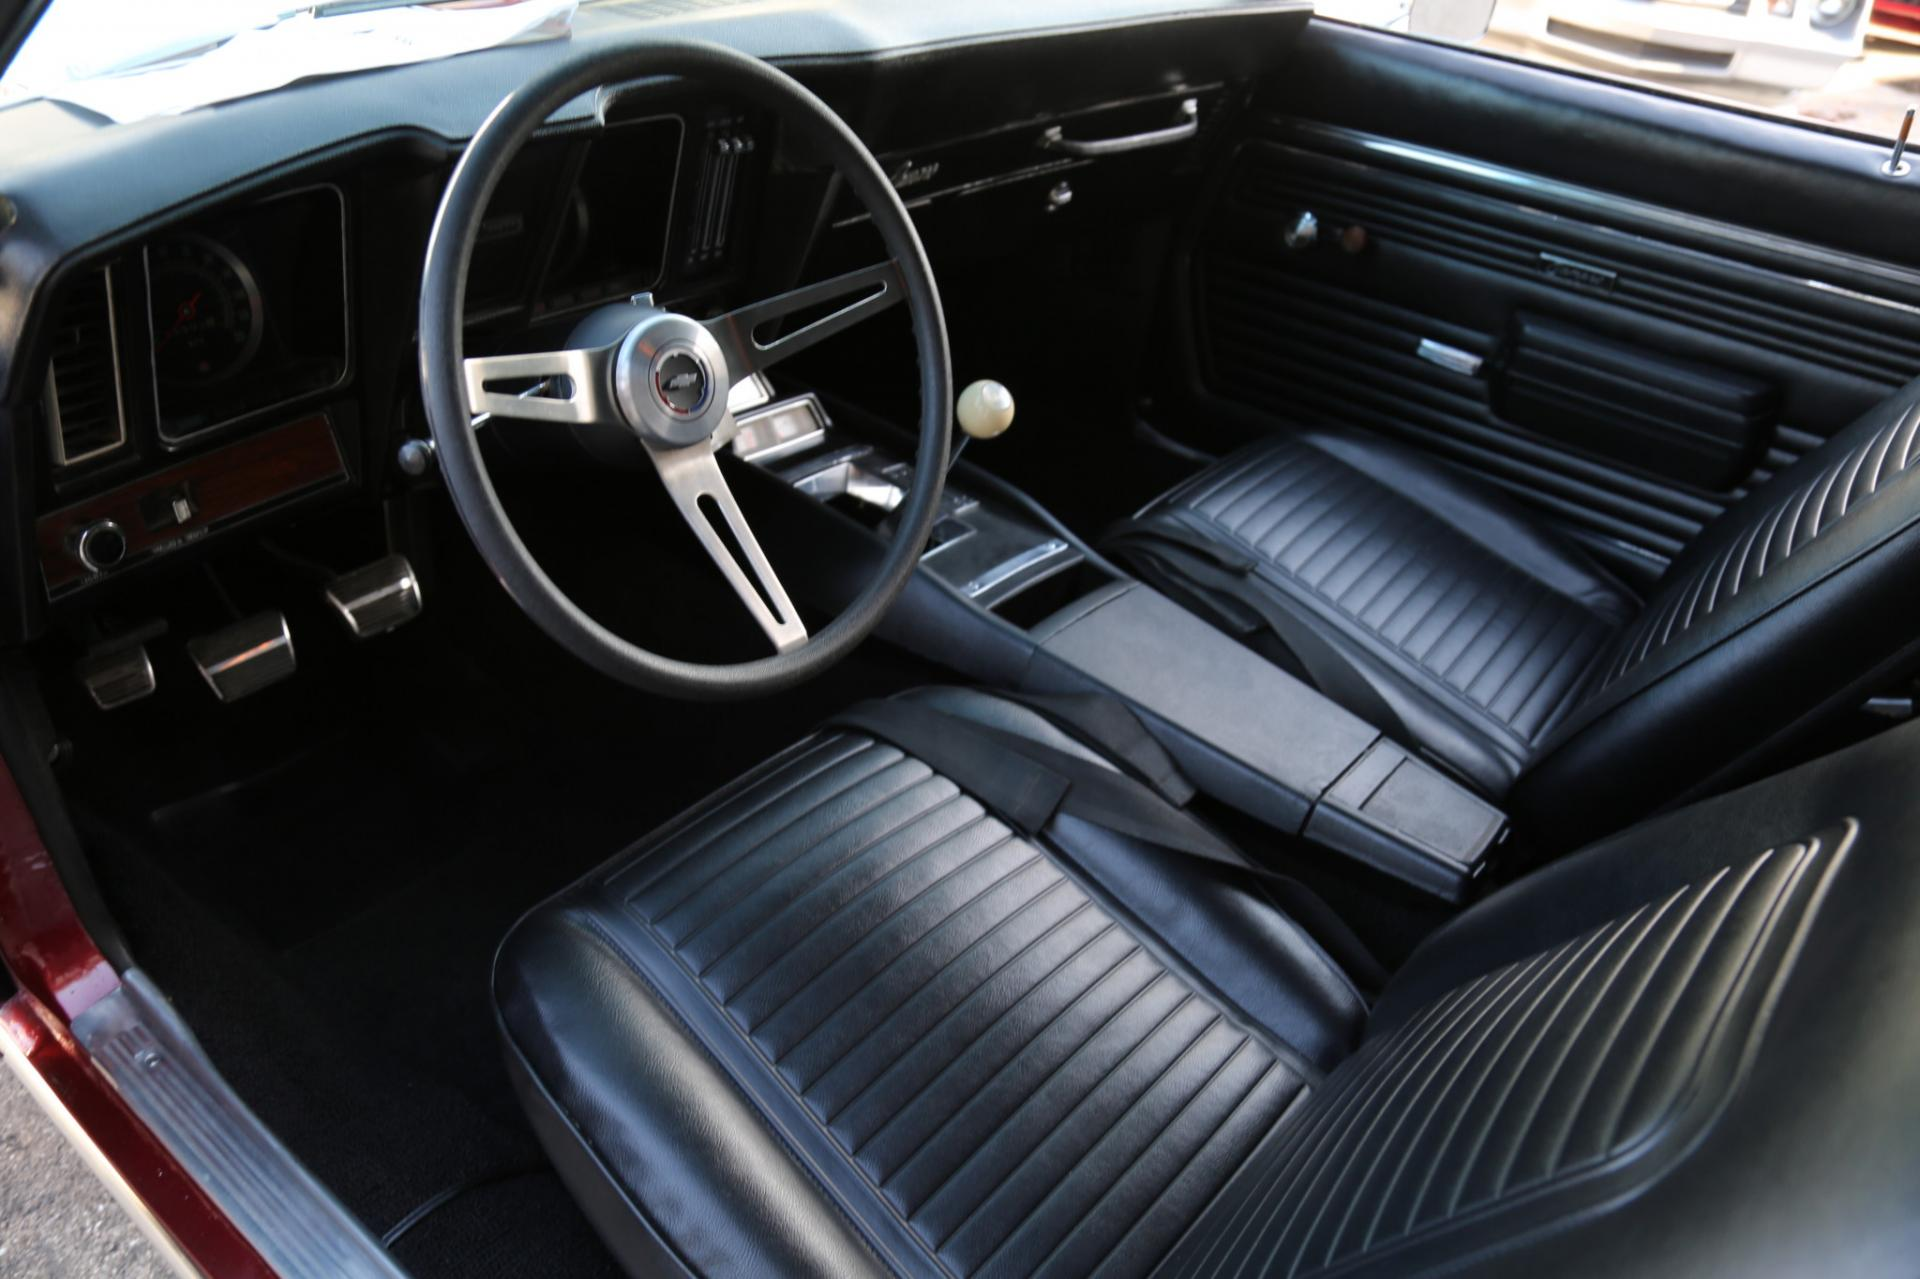 Used 1969 Chevrolet Camaro for sale Sold at Muscle Cars for Sale Inc. in Fort Myers FL 33912 6